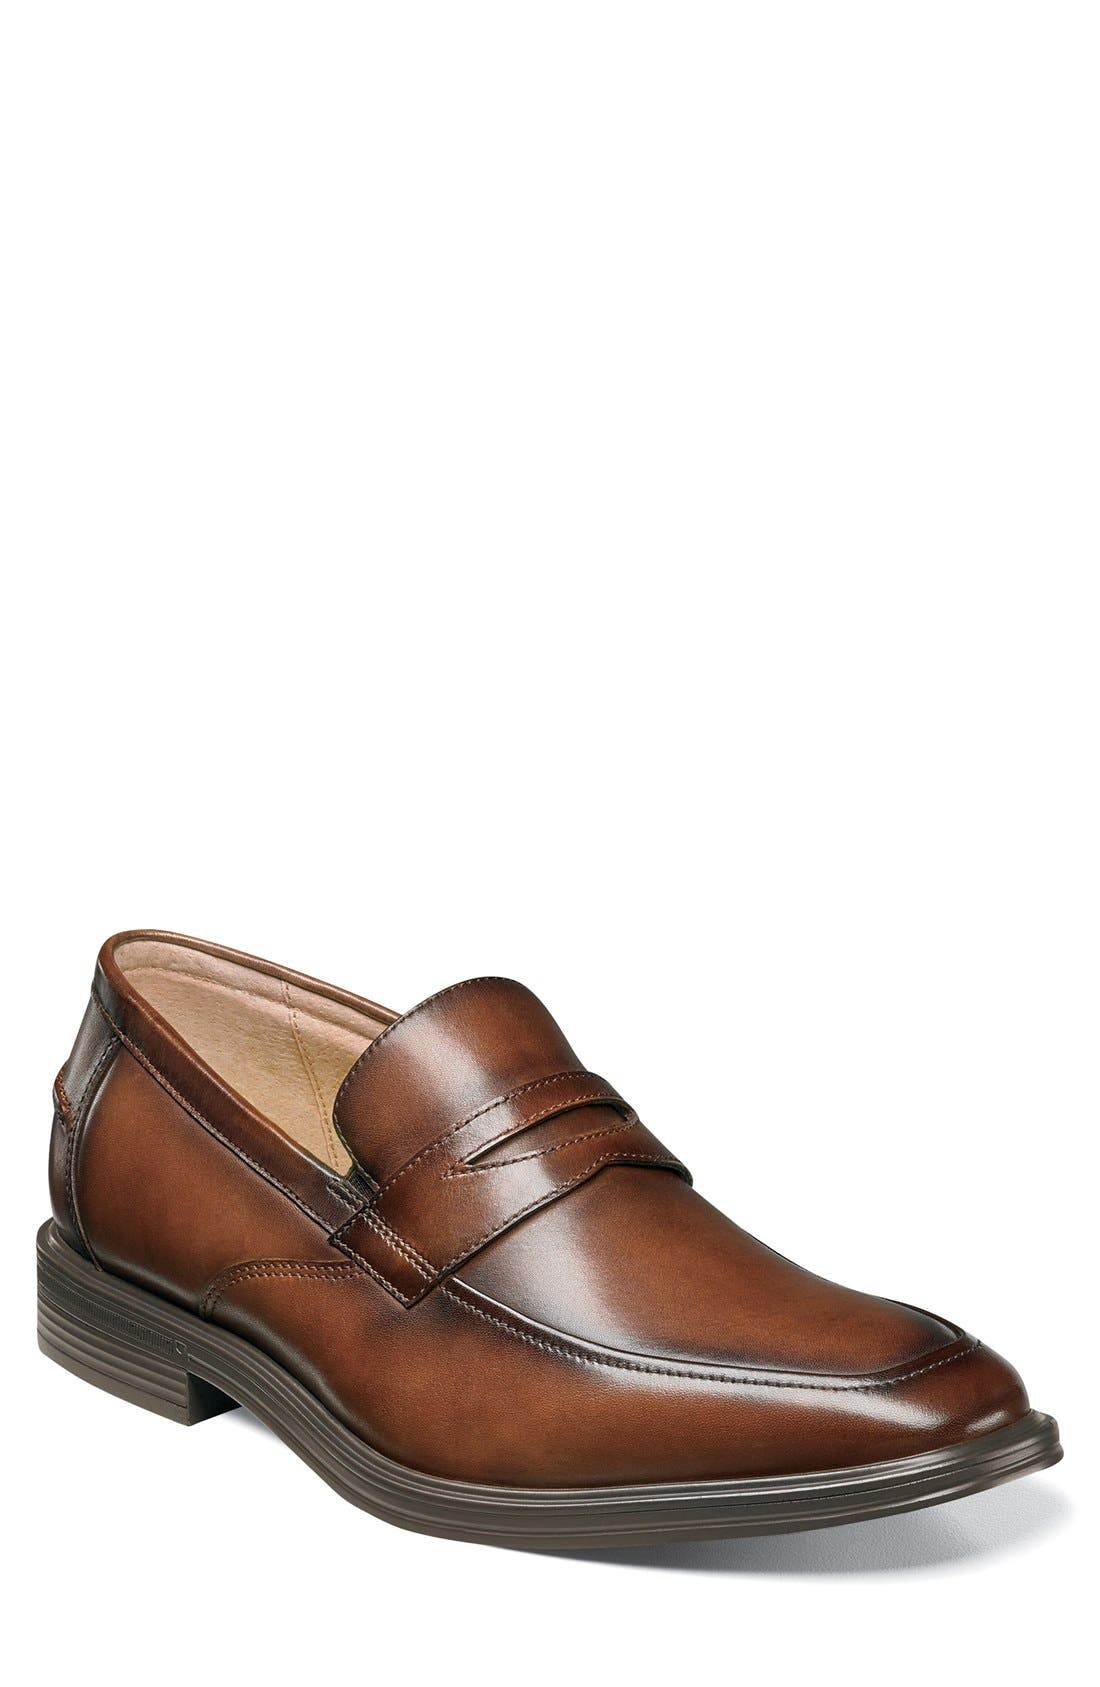 'Heights' Penny Loafer,                             Main thumbnail 1, color,                             COGNAC LEATHER